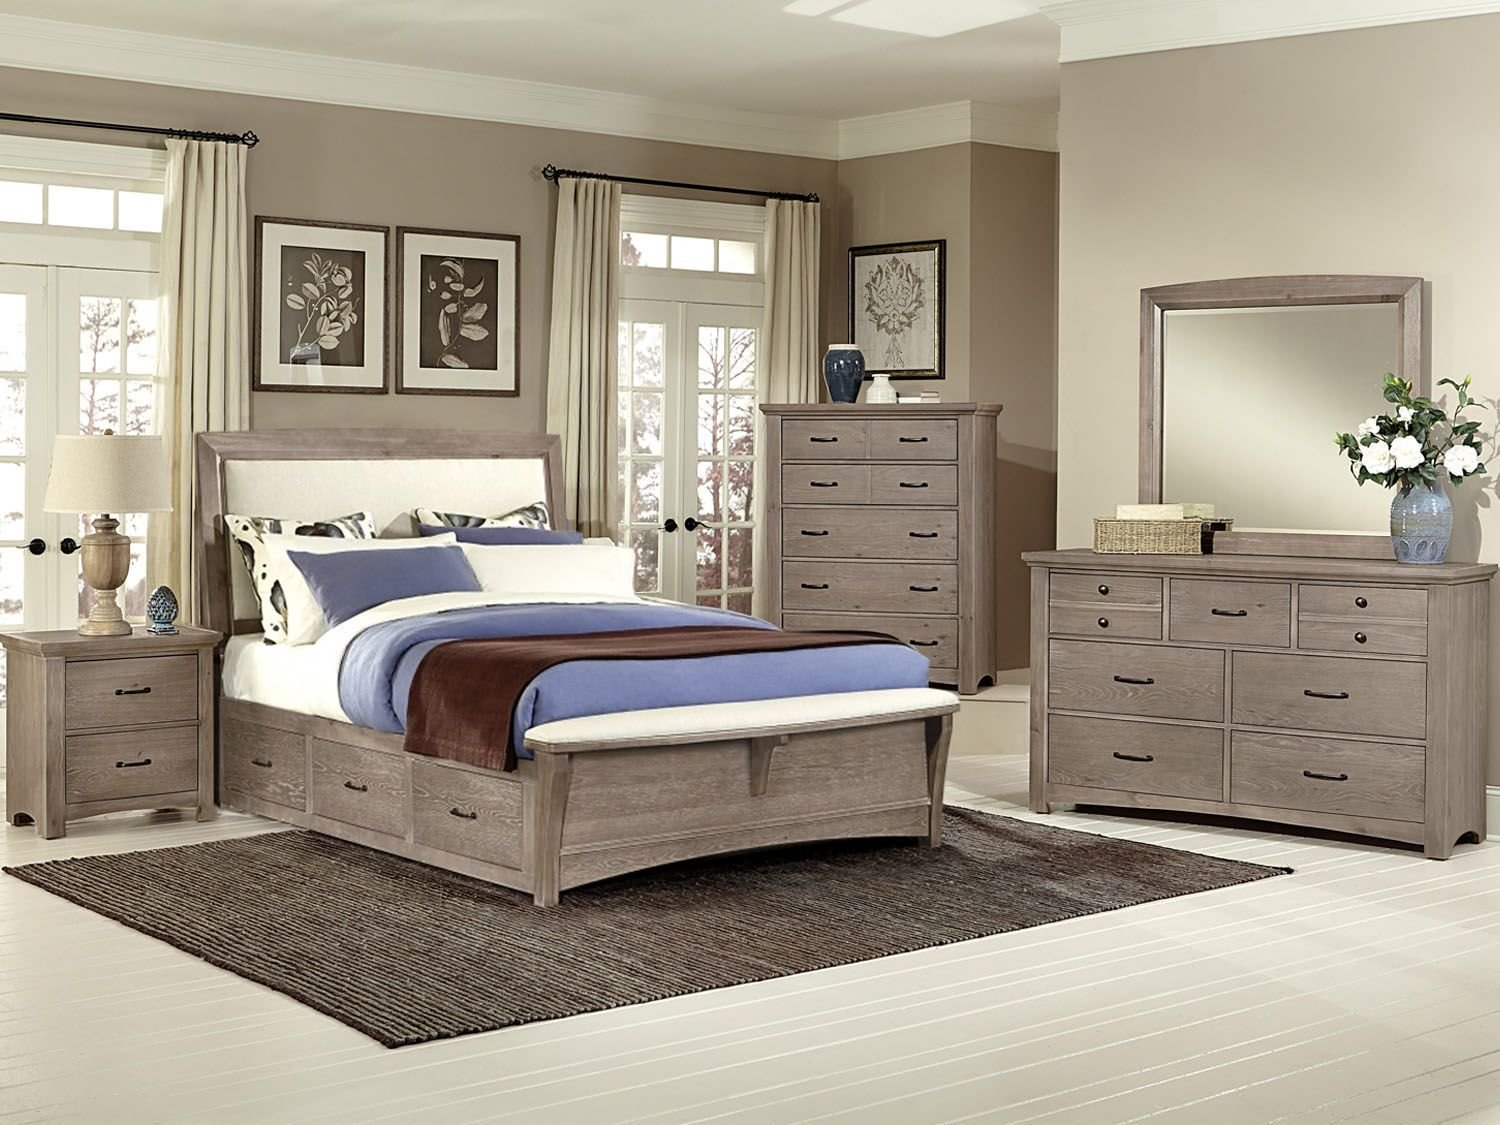 Best Top Used Bedroom Furniture For Sale Design Bedroom With Pictures